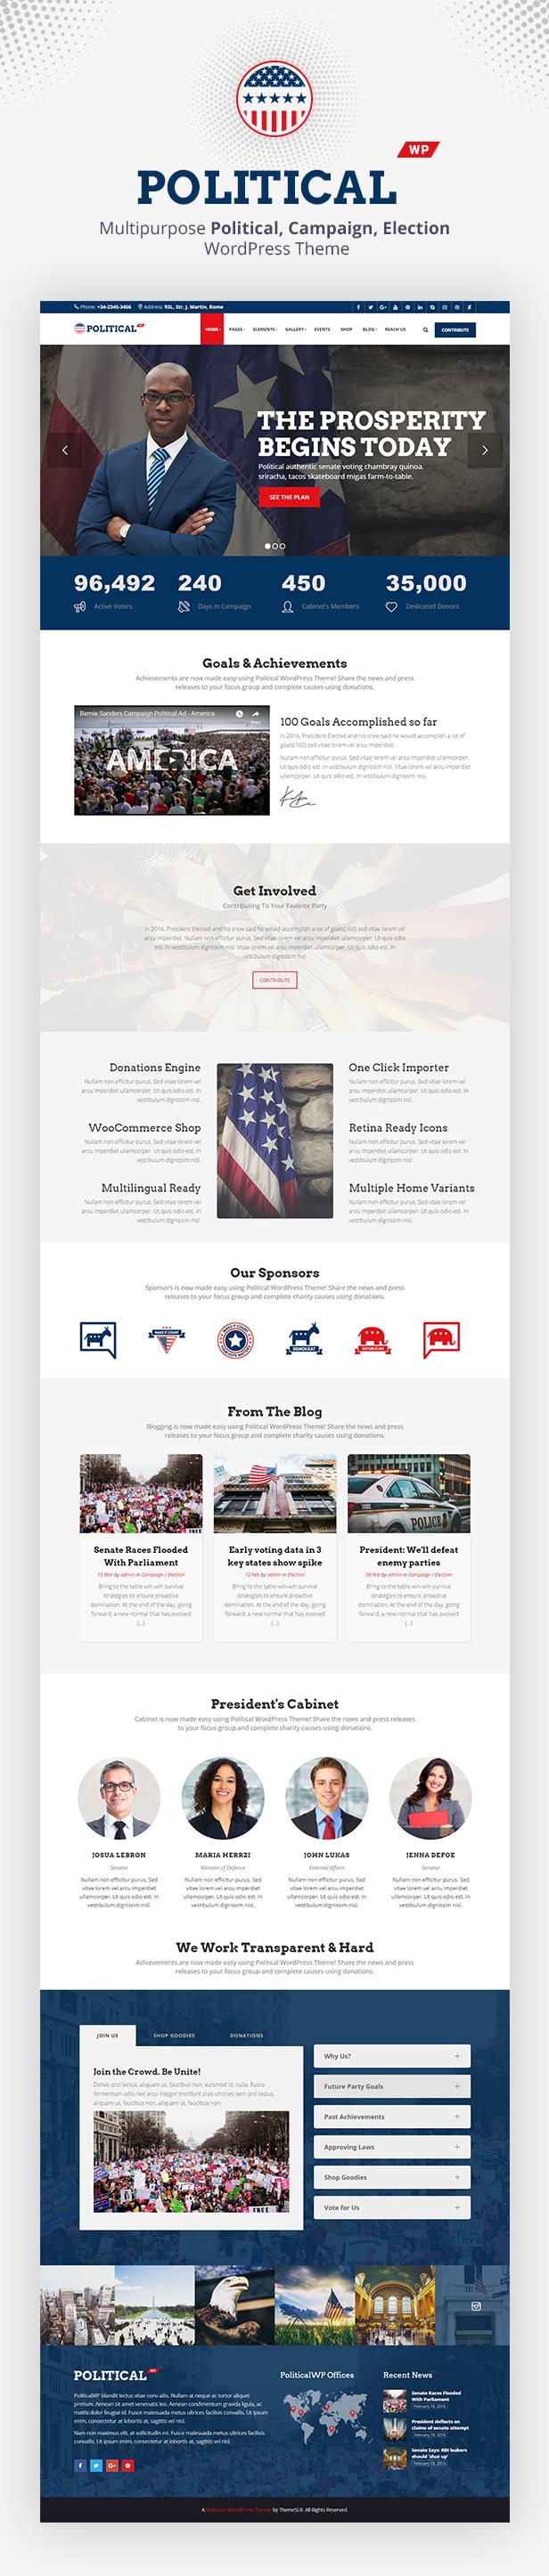 PoliticalWP - Multipurpose Campaign, Election WordPress Theme - 3